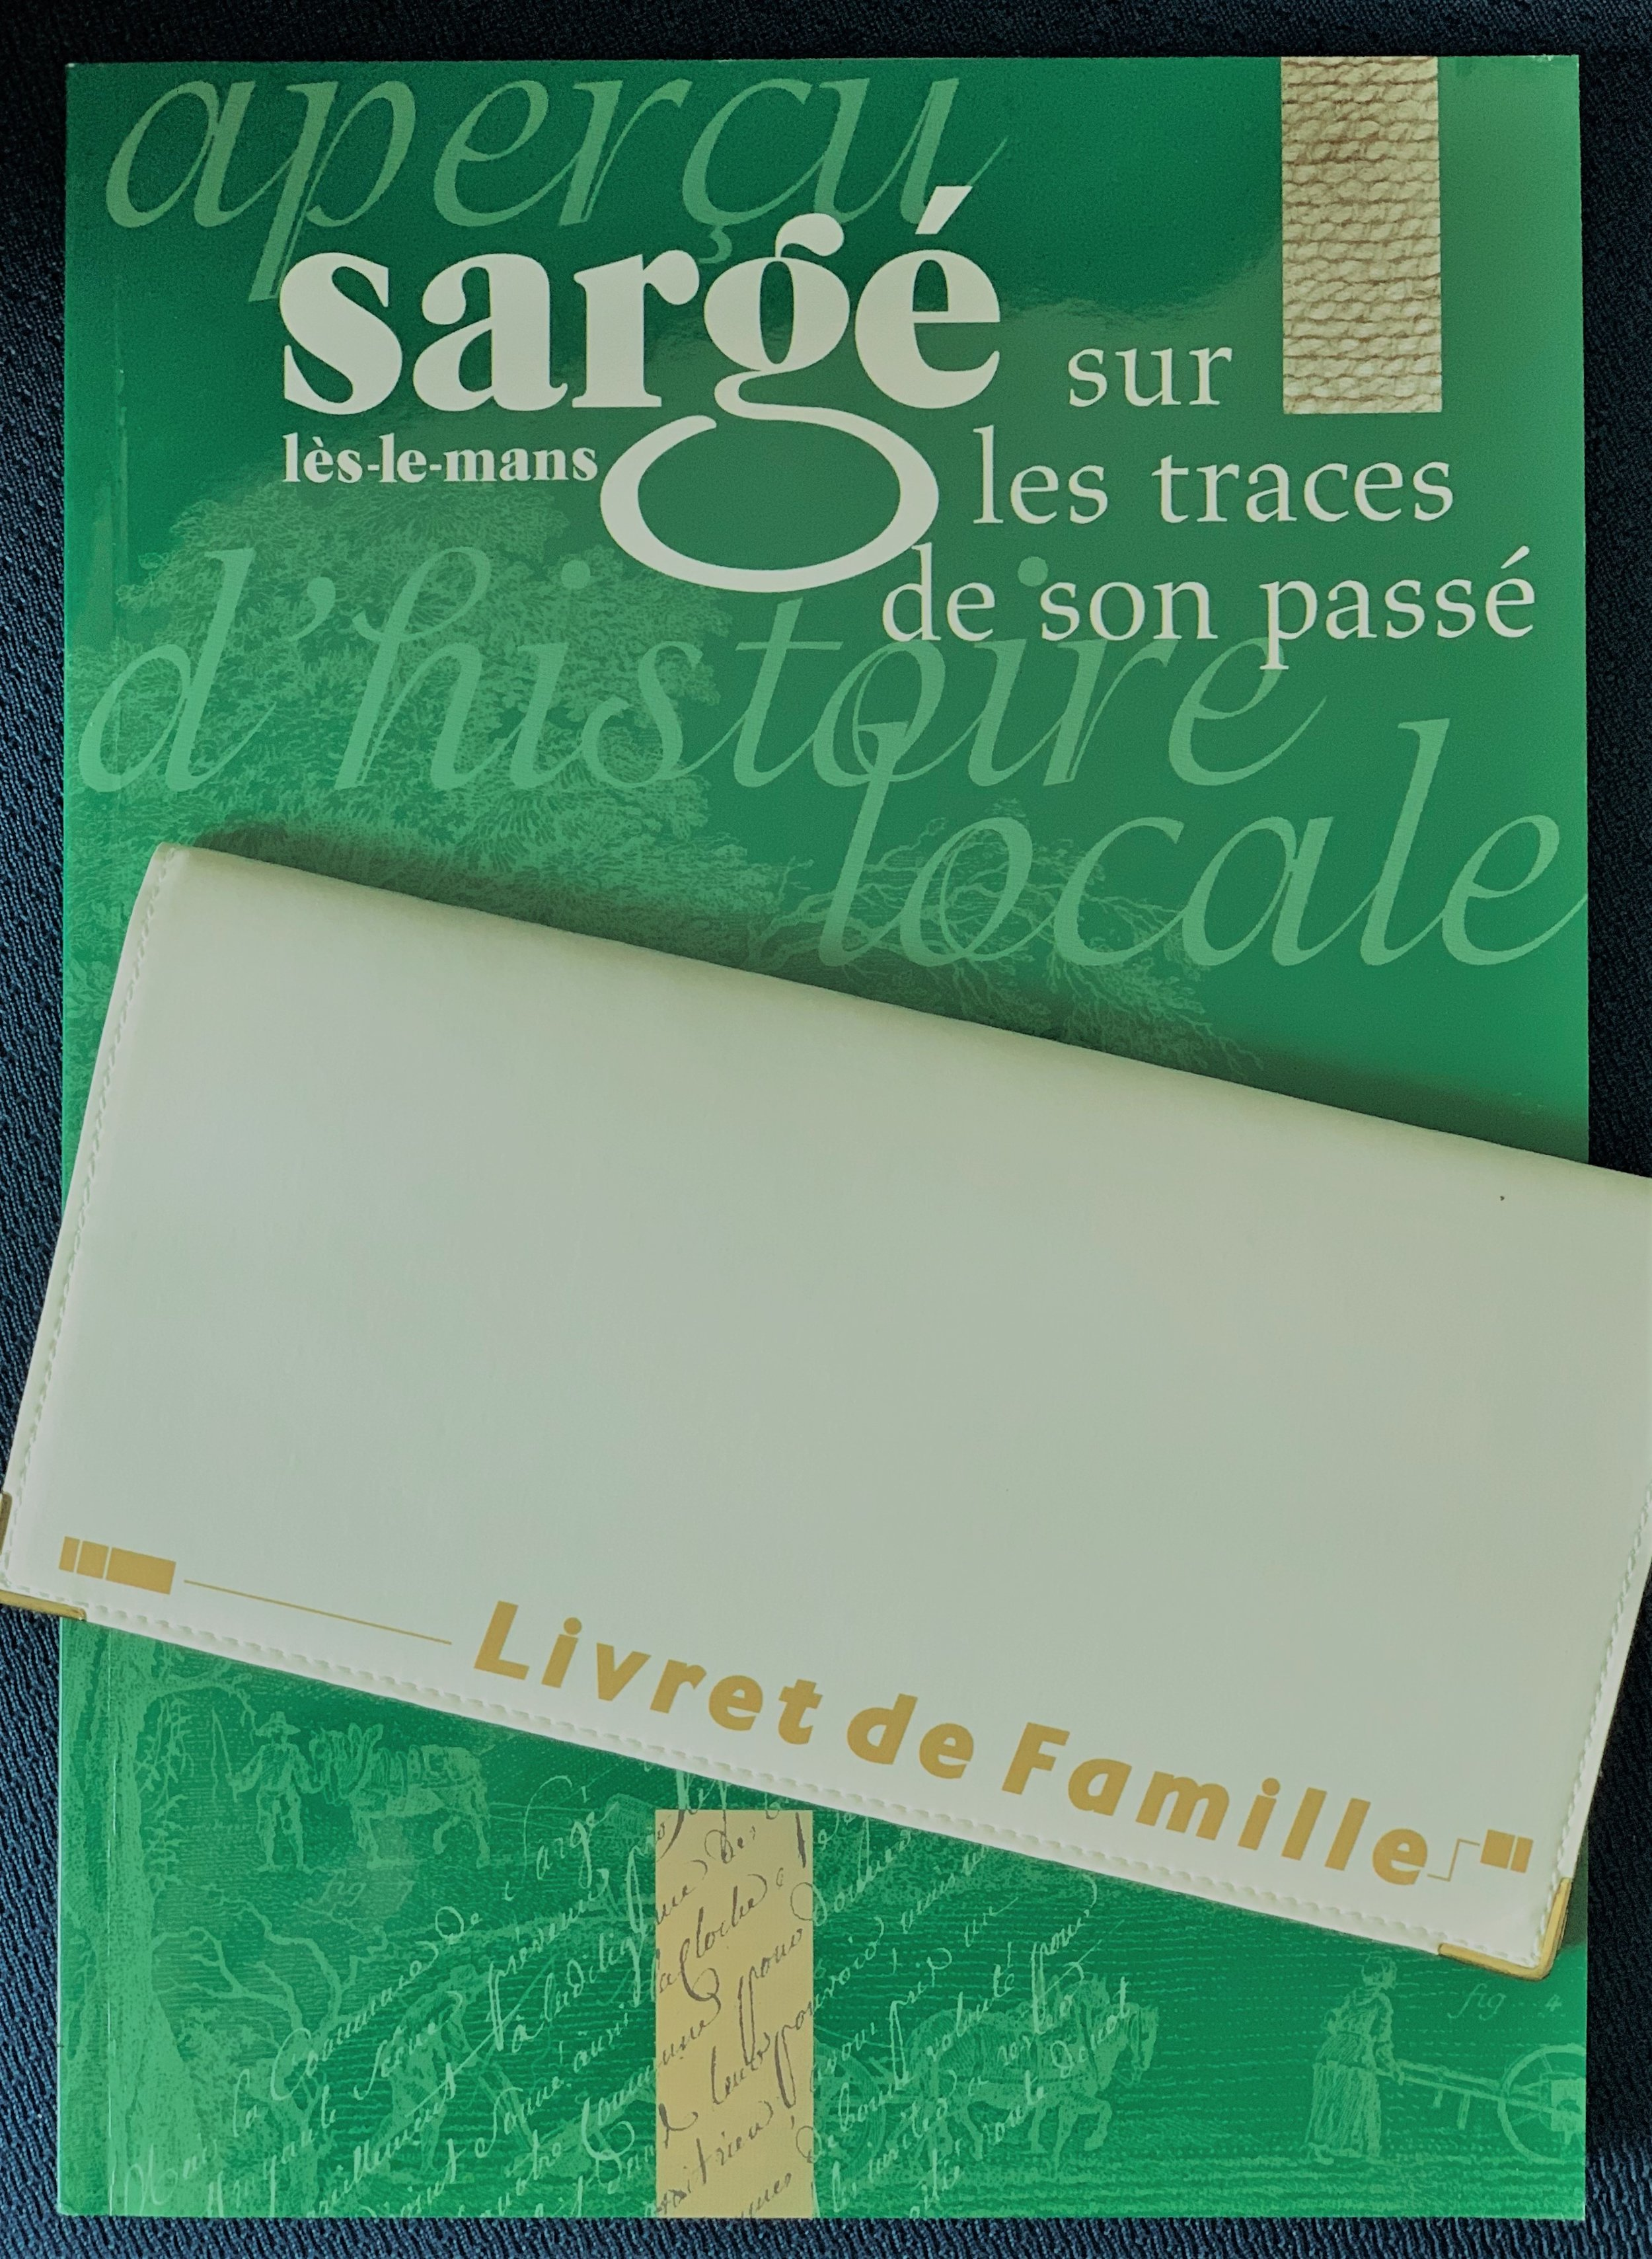 The mayor's gift of a book on his small town in France and our French Book of the Family.